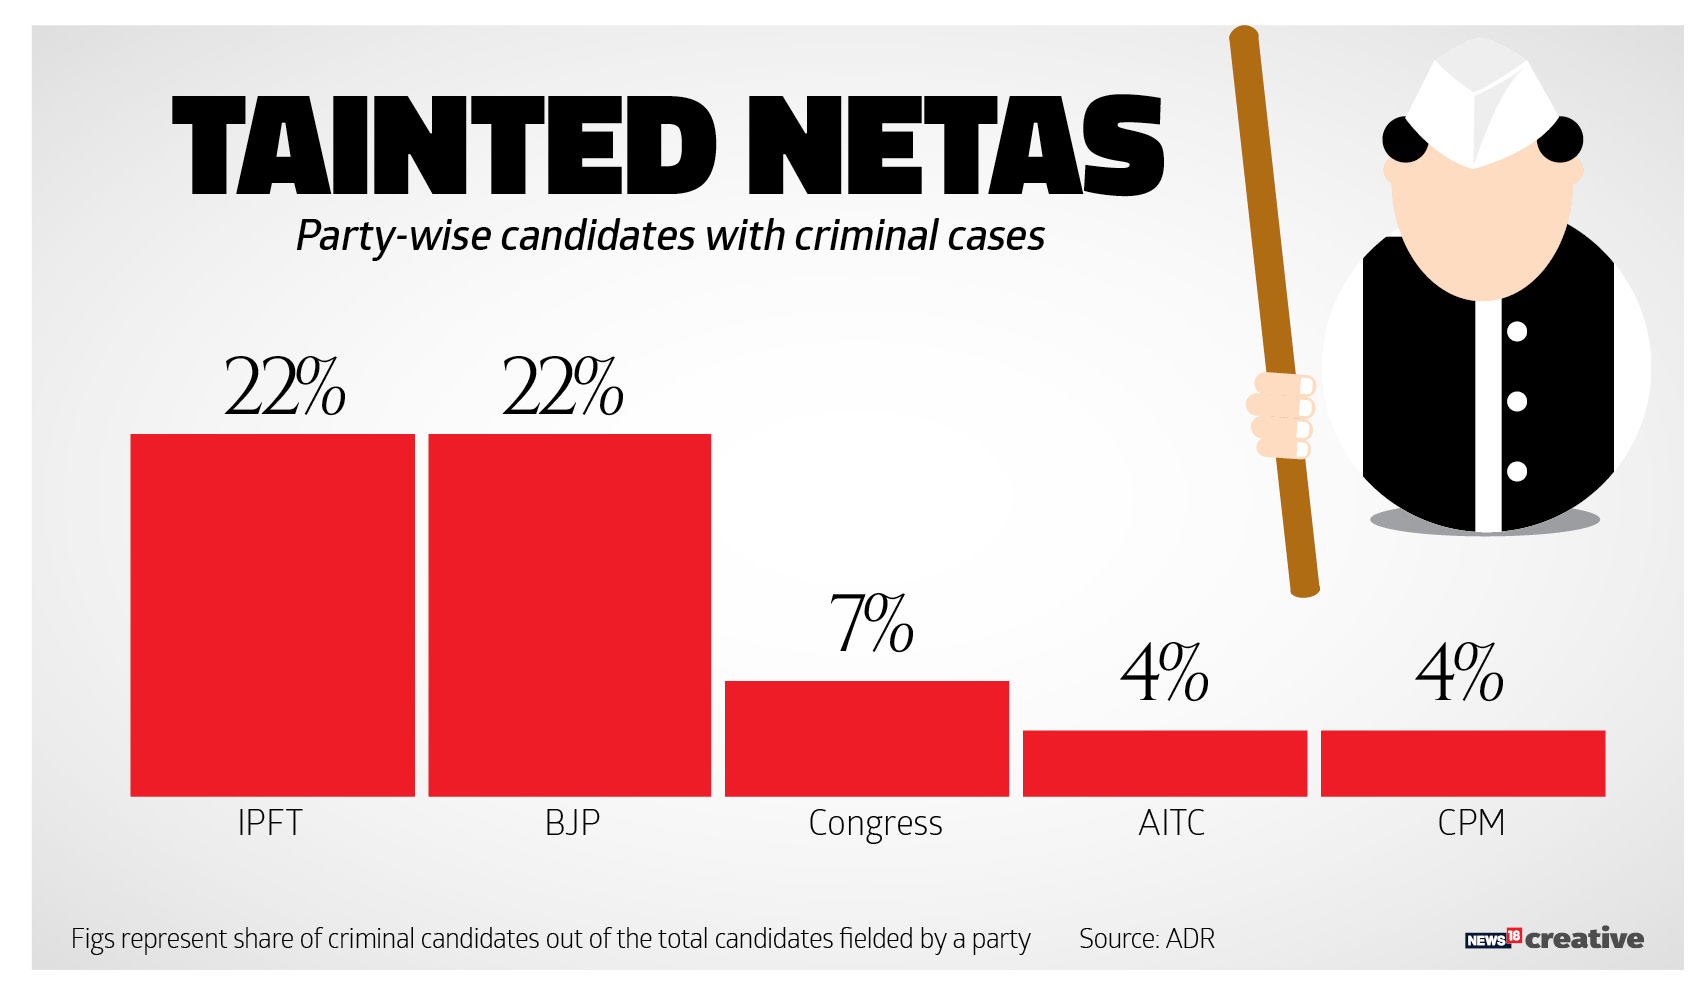 The Party wise compilation of candidates with criminal cases